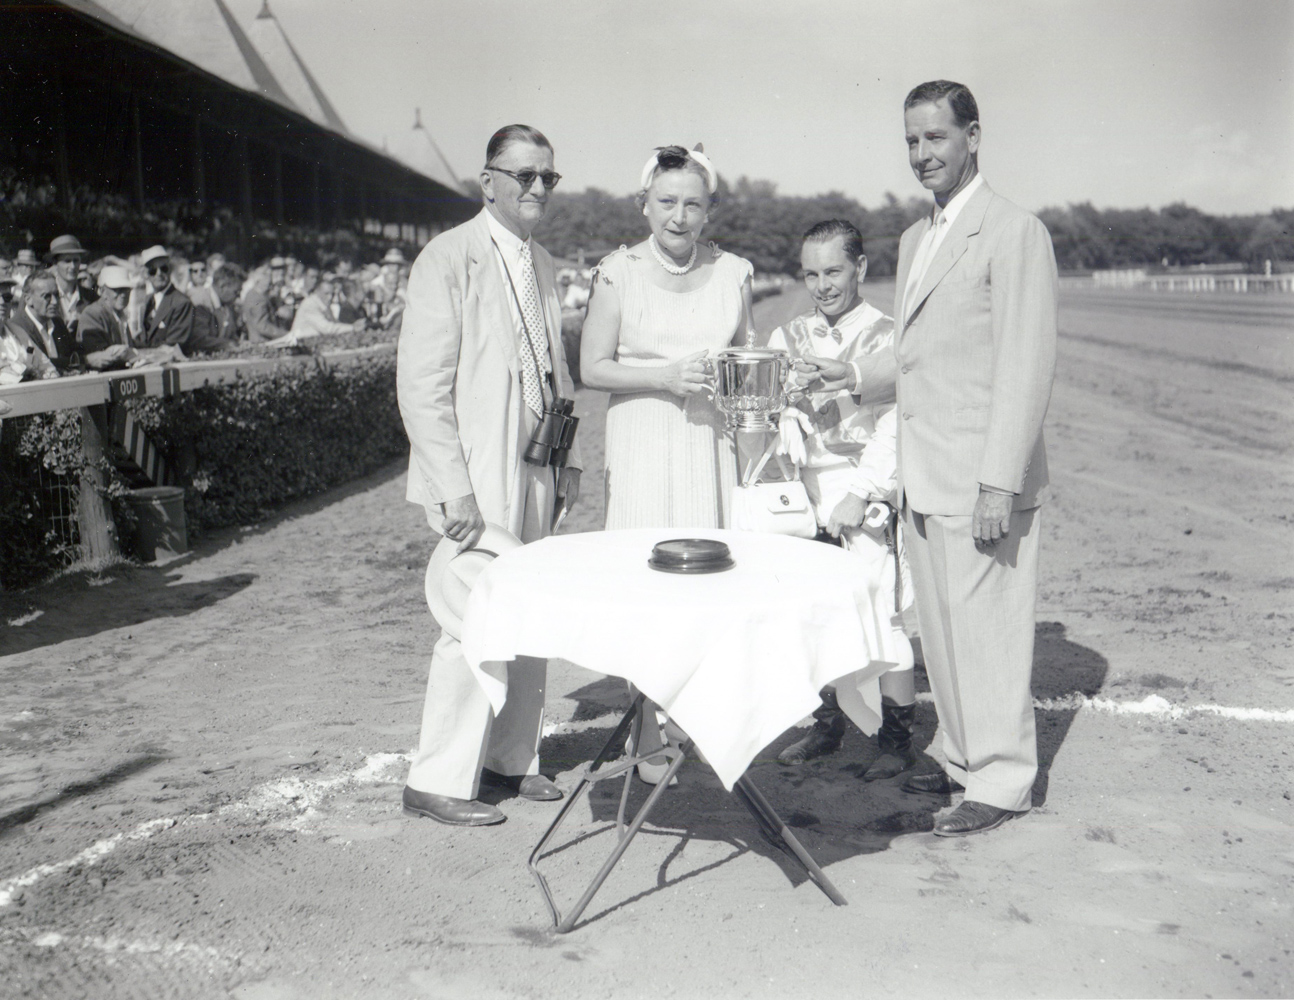 Preston M. Burch, Isabel Dodge Sloane, Hedley J. Woodhouse, and C. V. Whitney at the 1955 Whitney trophy presentation at Saratoga (Keeneland Library Morgan Collection/Museum Collection)